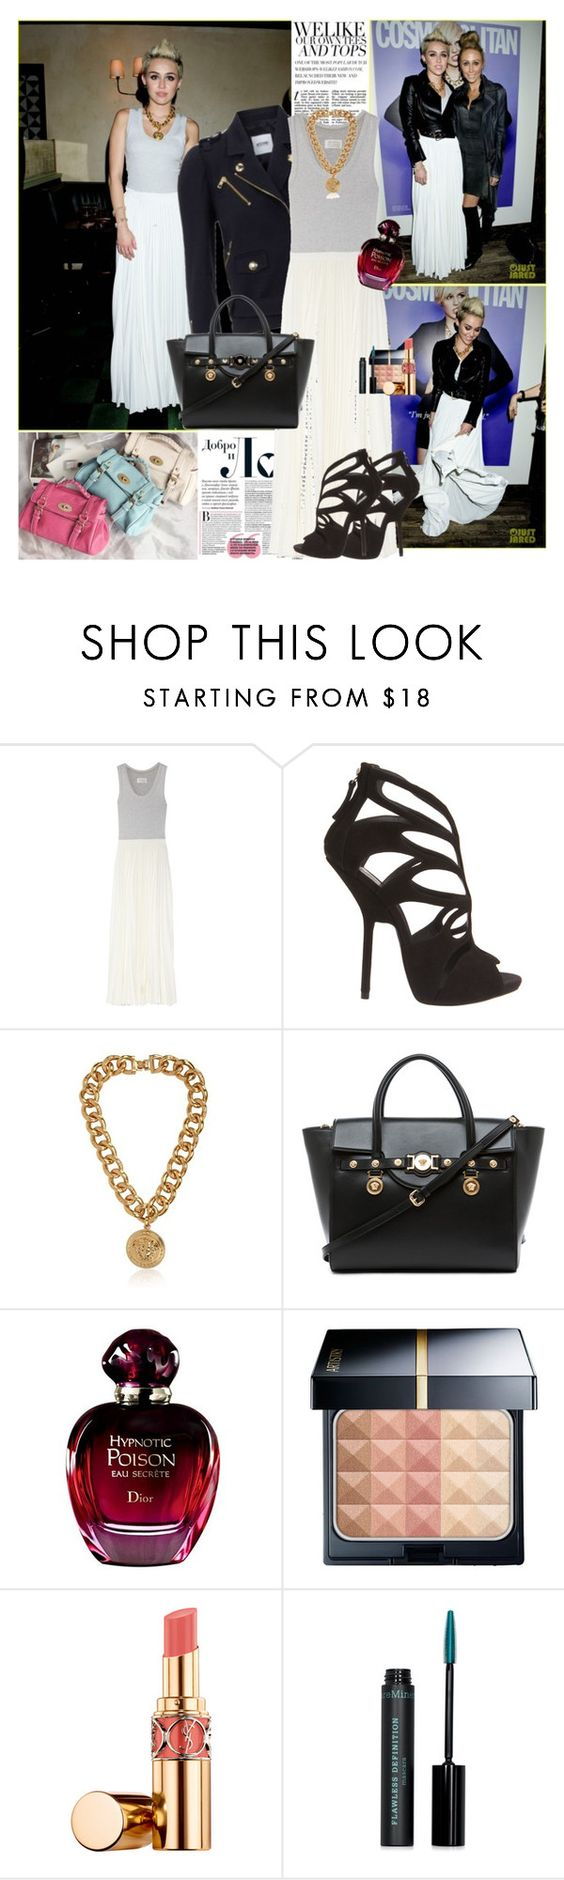 """Celebrity Style: Miley Cyrus (19/02/2013)"" by lulys2nano ❤ liked on Polyvore featuring Cyrus, Jennifer Lopez, Moschino Cheap & Chic, Maison Margiela, Giuseppe Zanotti, Versace, Yves Saint Laurent and MAC Cosmetics"